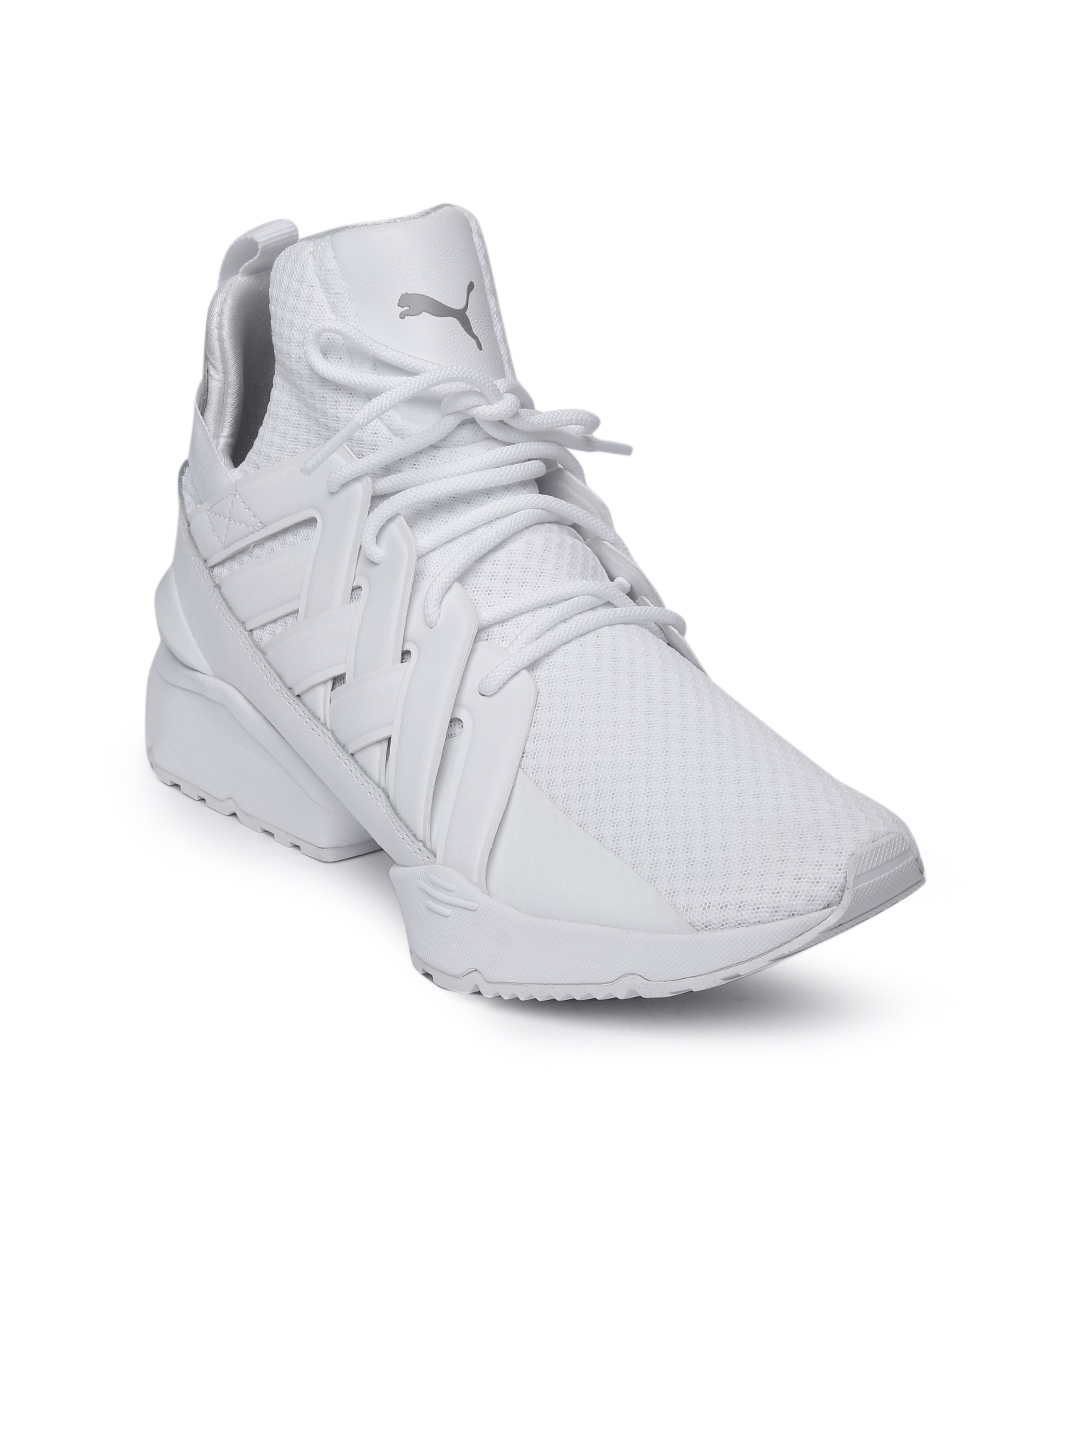 Buy Puma Women White Muse Echo EP MId Top Sneakers - Casual Shoes ... 764d1148c